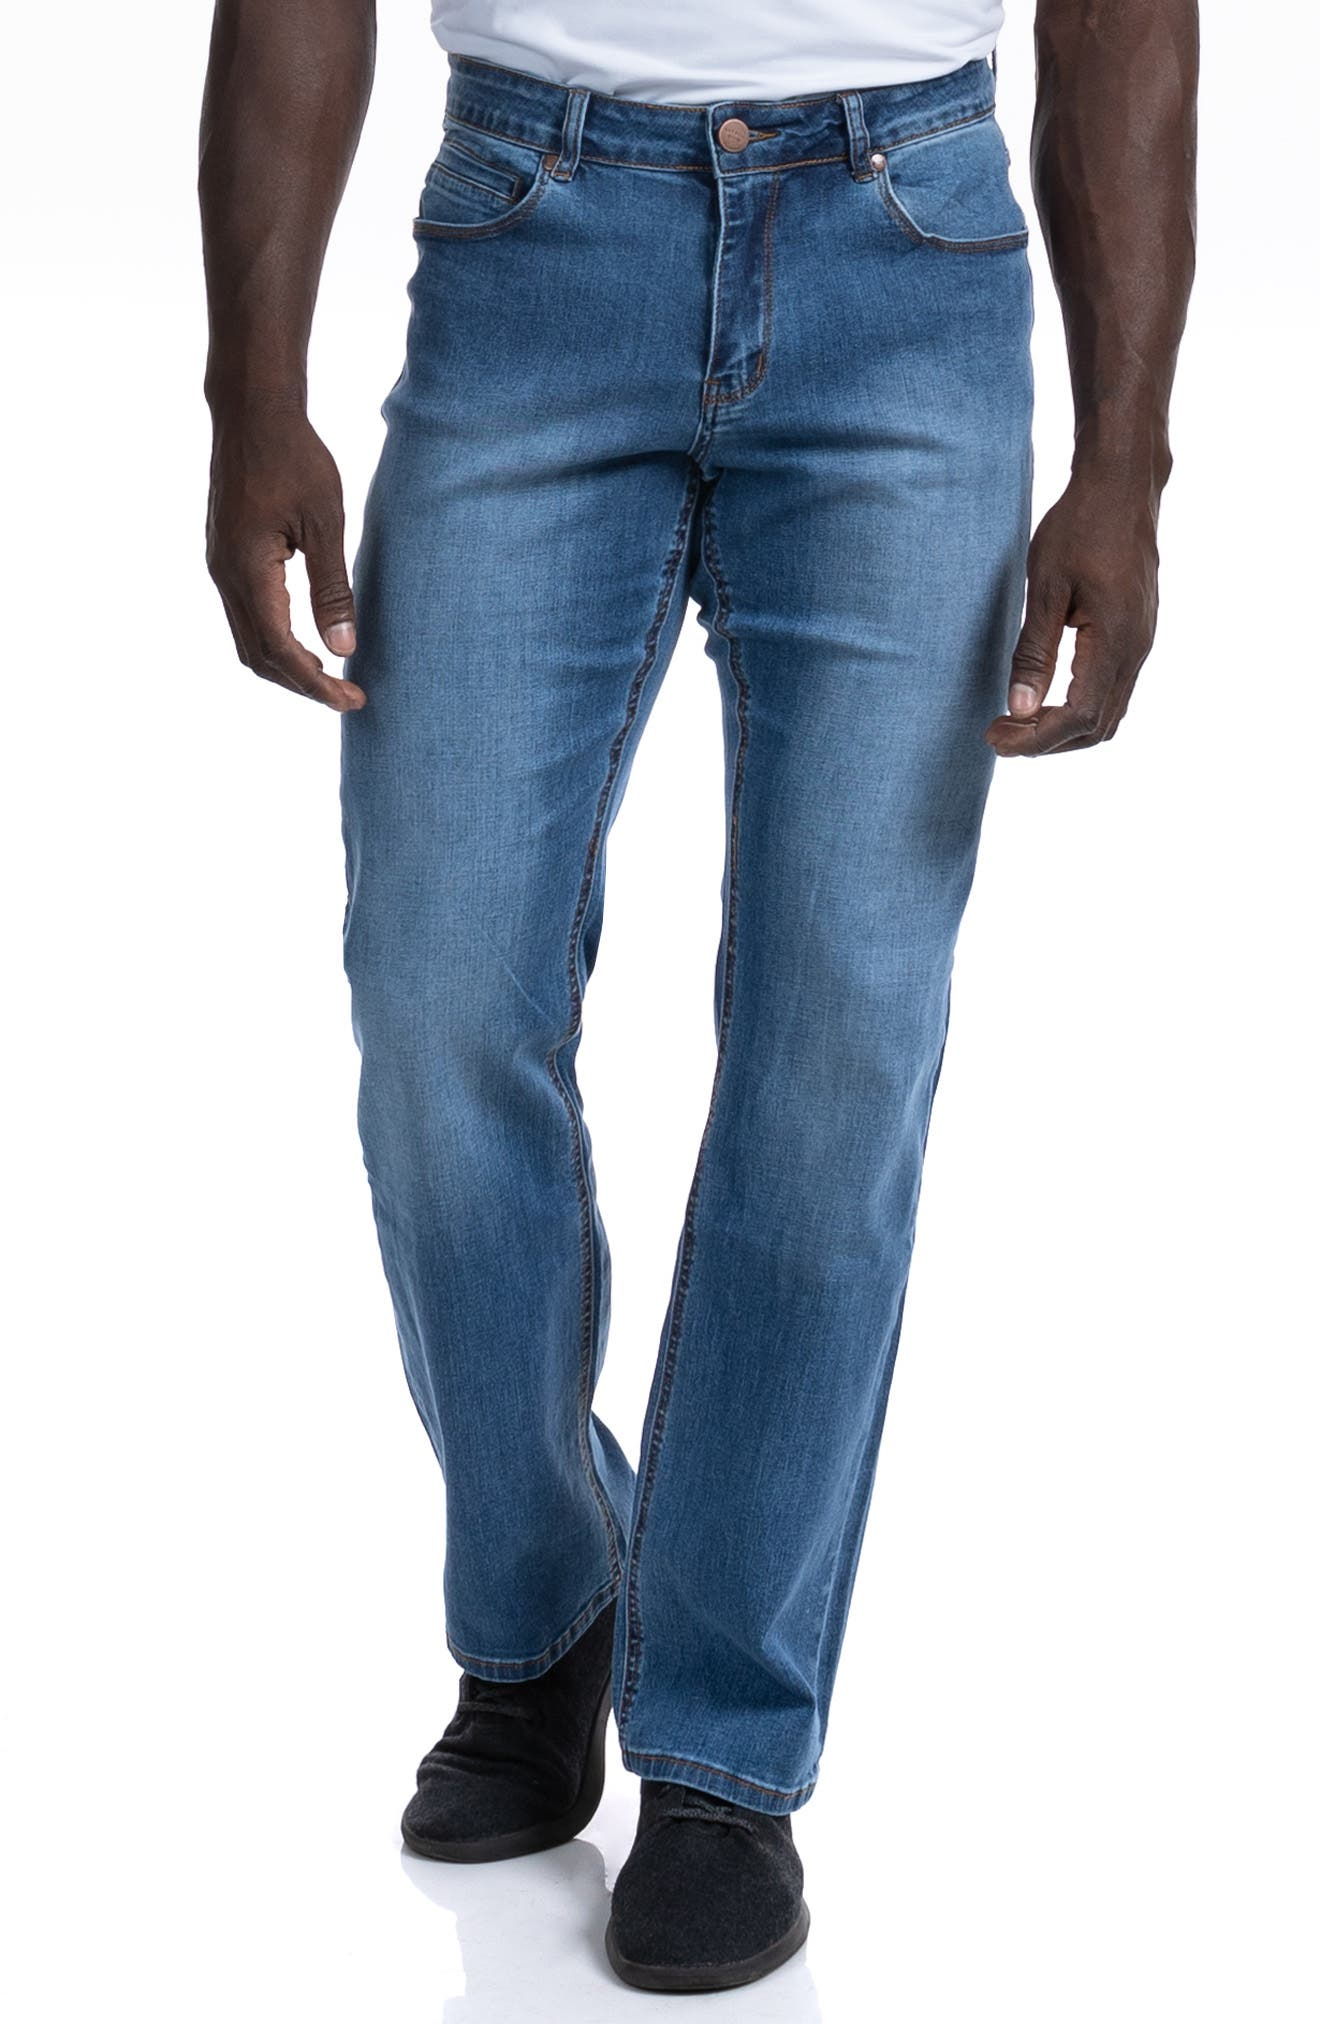 Relaxed Athletic Fit Jeans